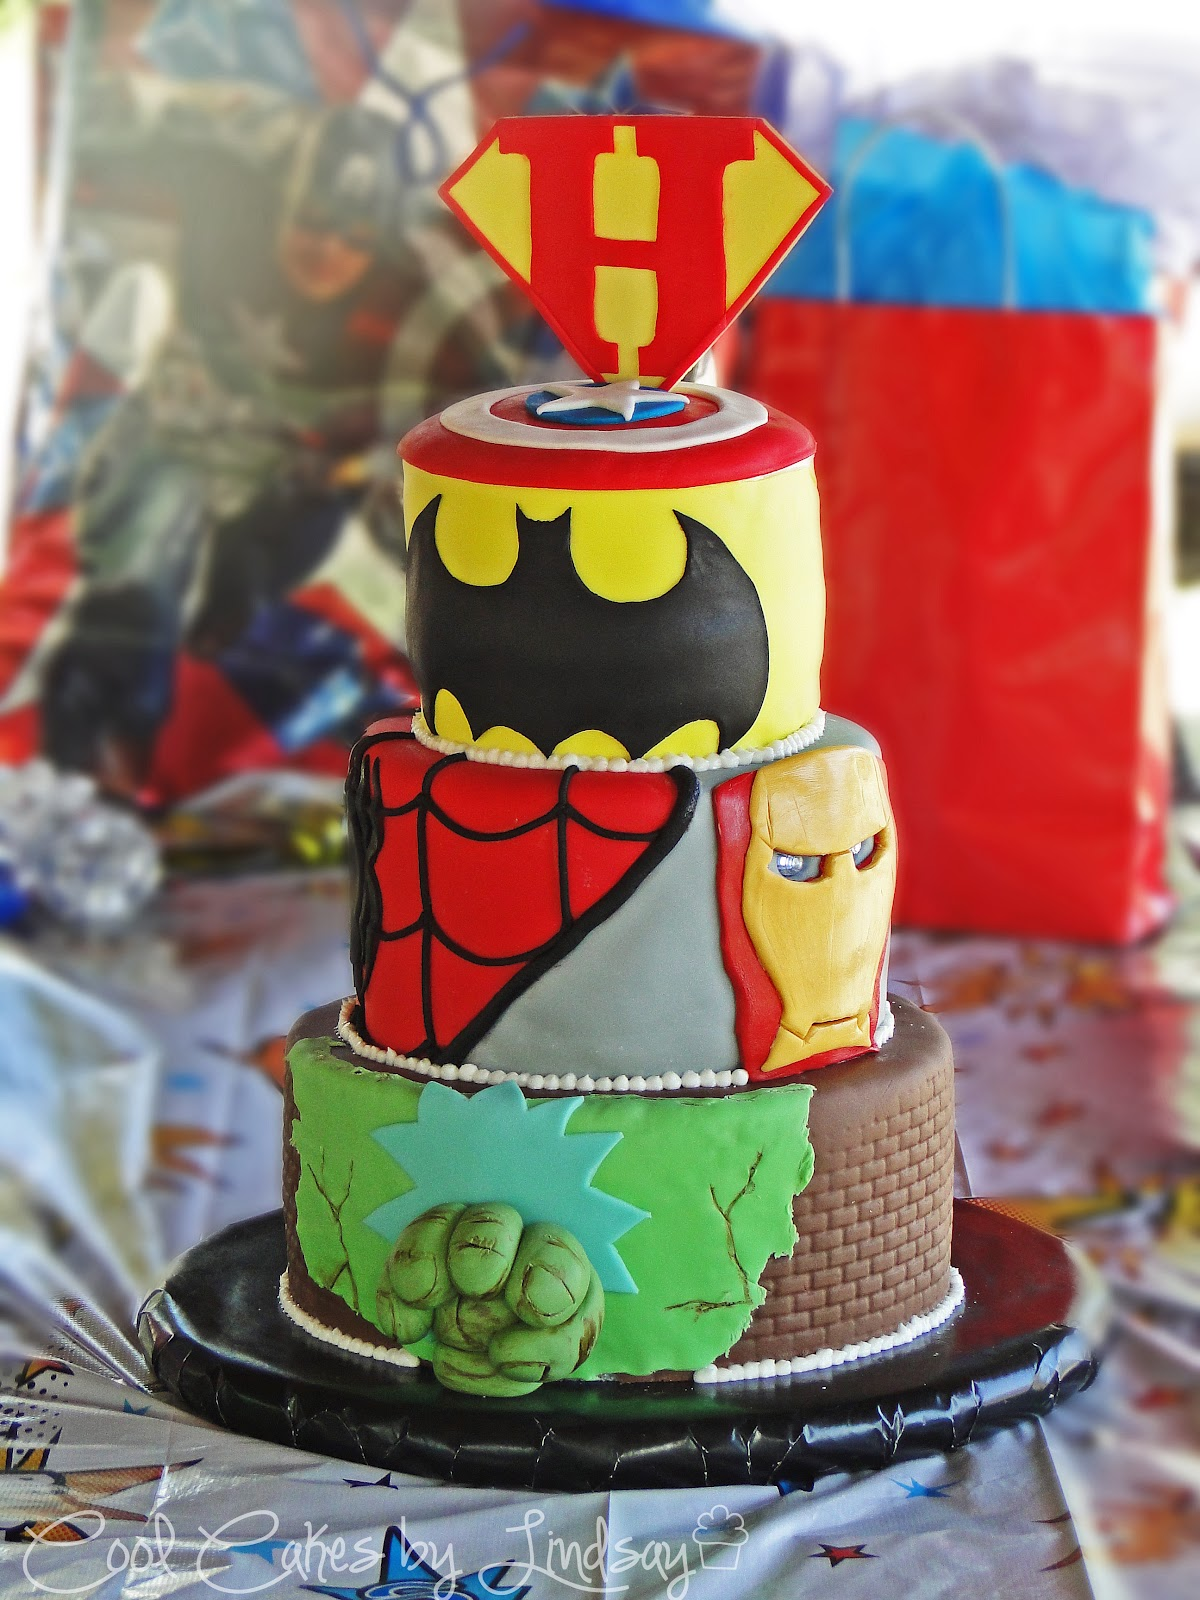 Cool Cakes By Lindsay submited images